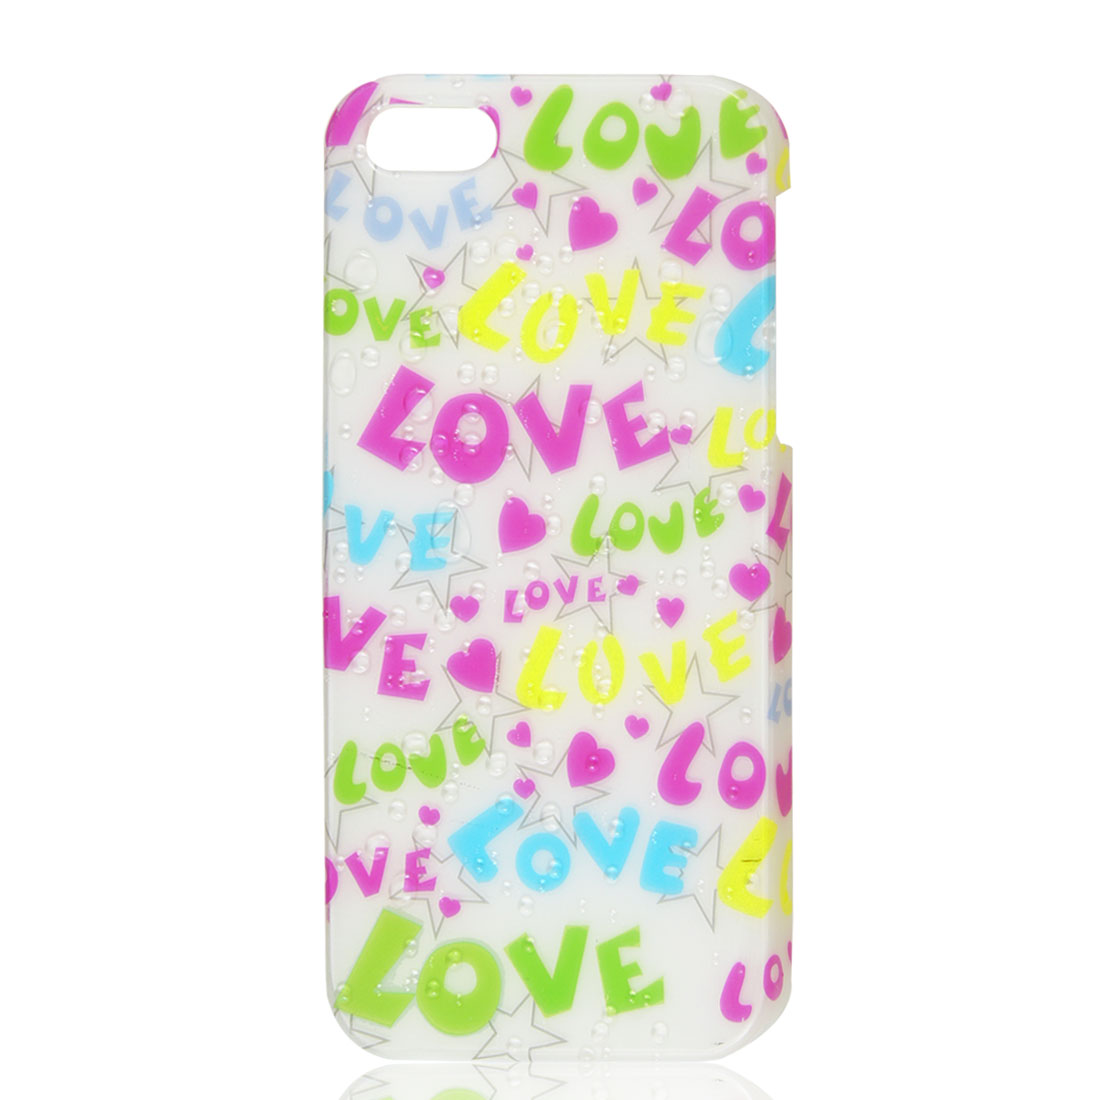 Colorful Love Letters 3D Water Drop Waterdrop Hard Back Case Cover for iPhone 5 5G